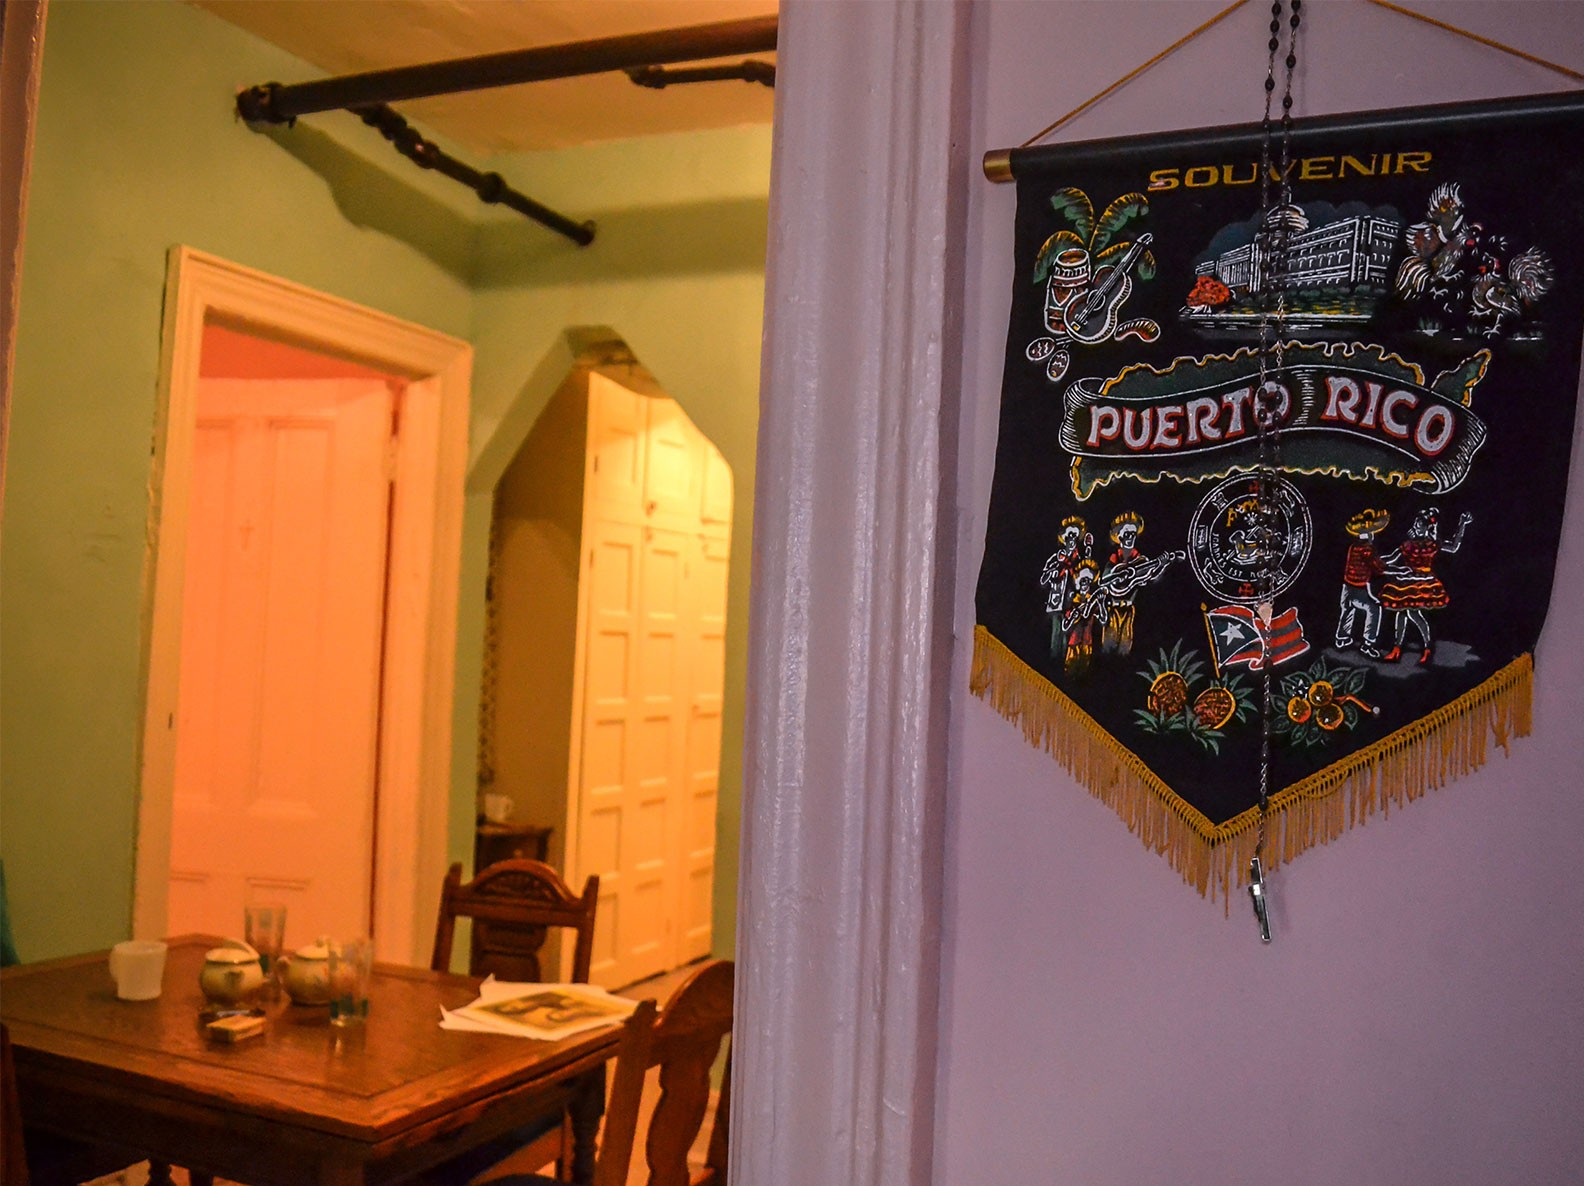 Puerto Rico wall hanging in the Saez-Velez kitchen with the Epstein family dining room in the background